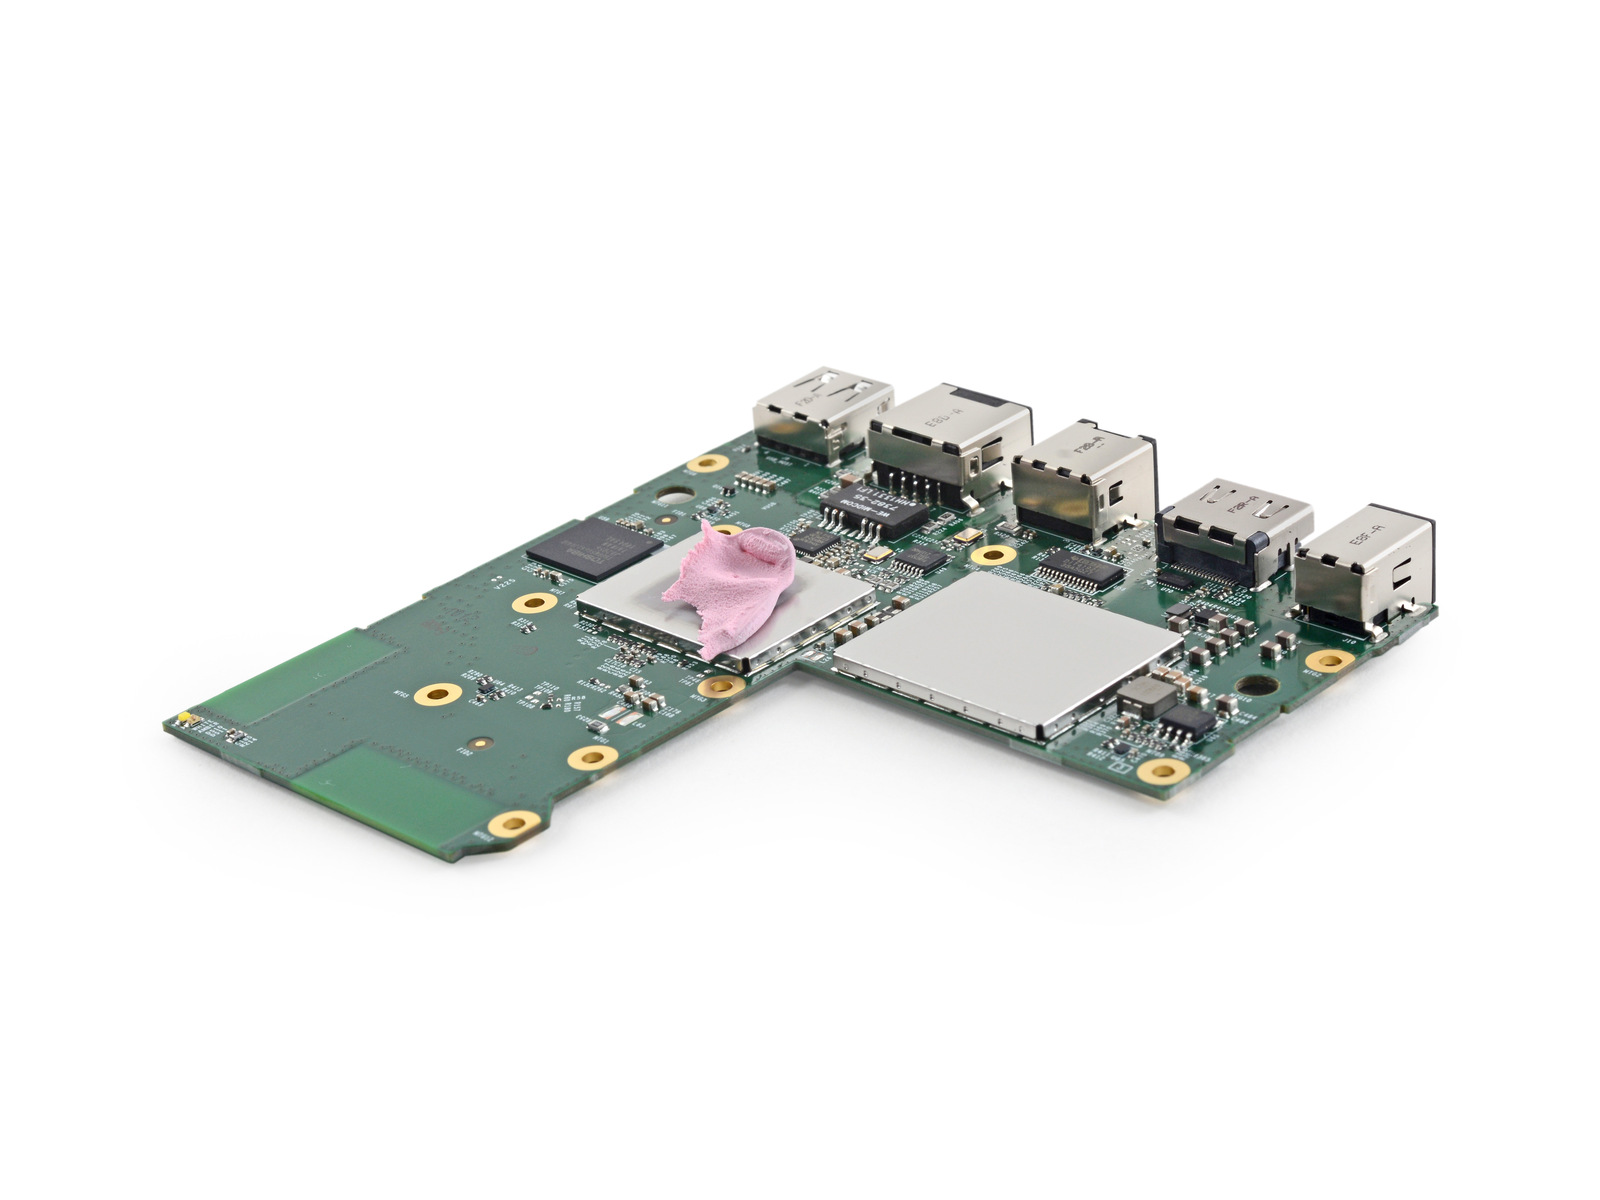 The system board and its bubblegum-pink thermal pad, separated from the Fire TV's large heatsink.